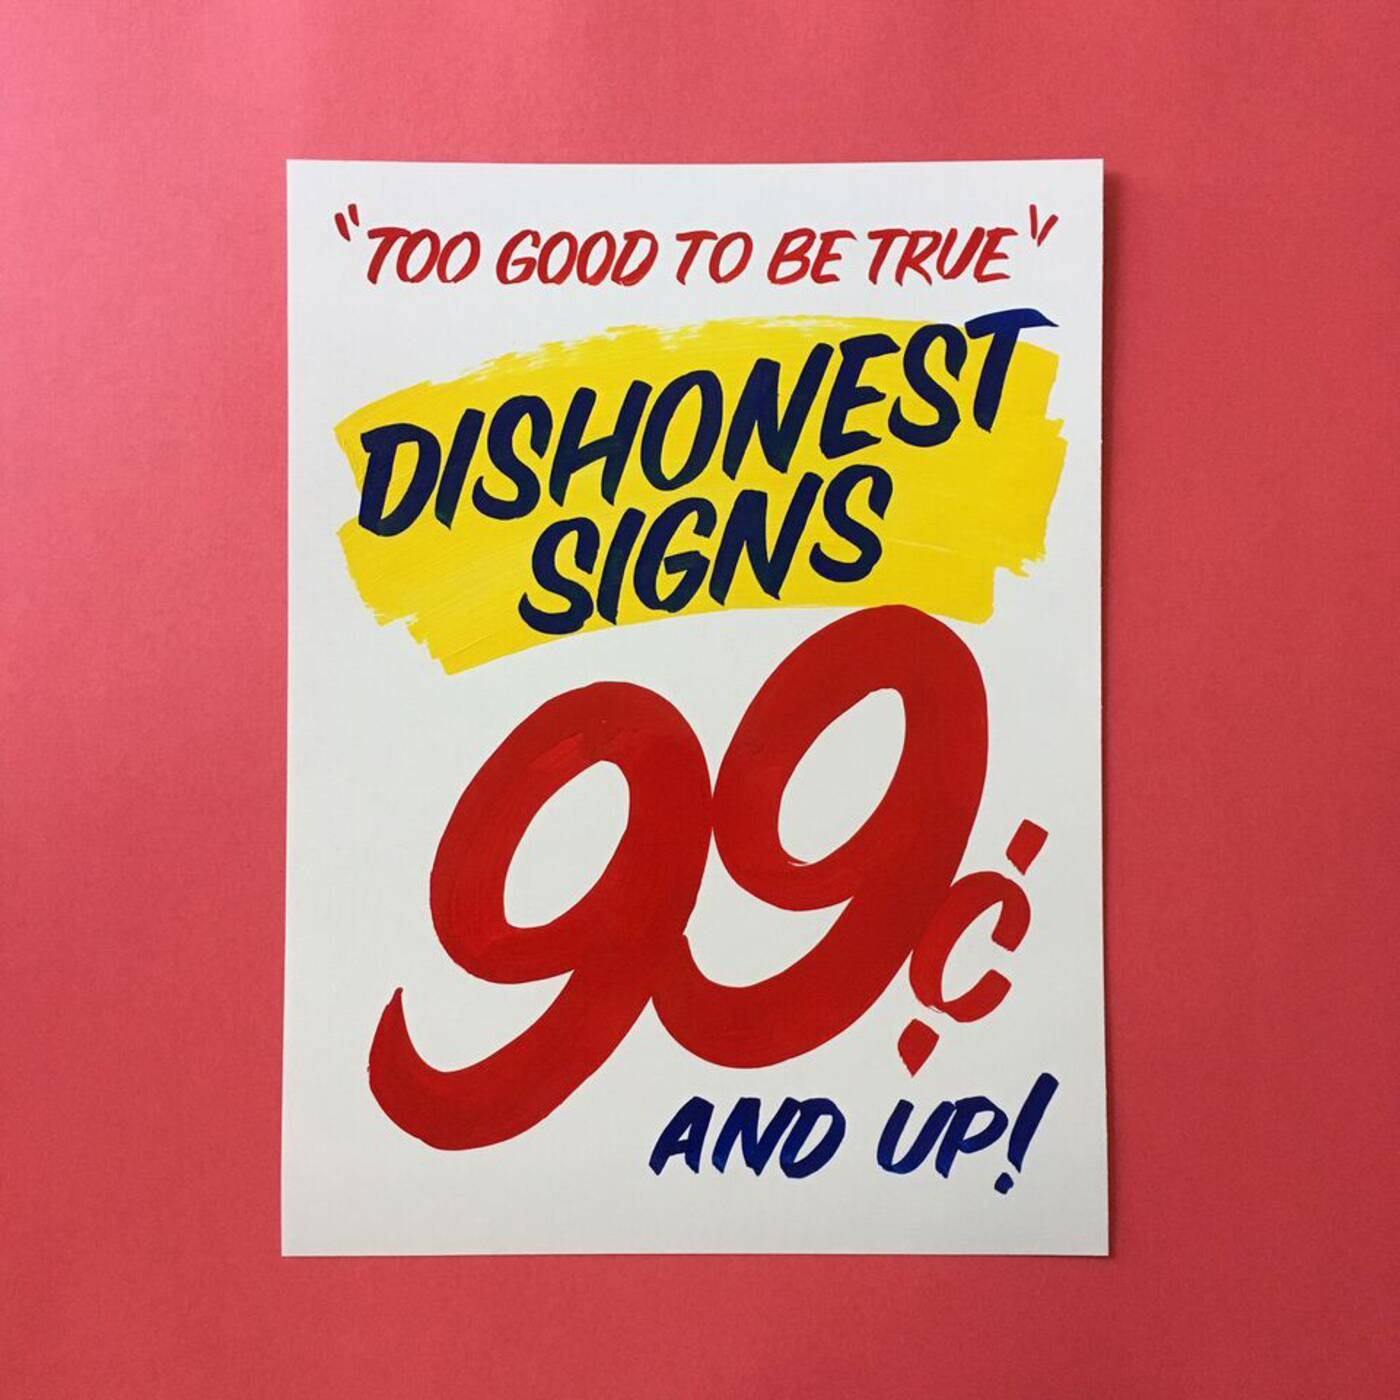 dishonest eds signs